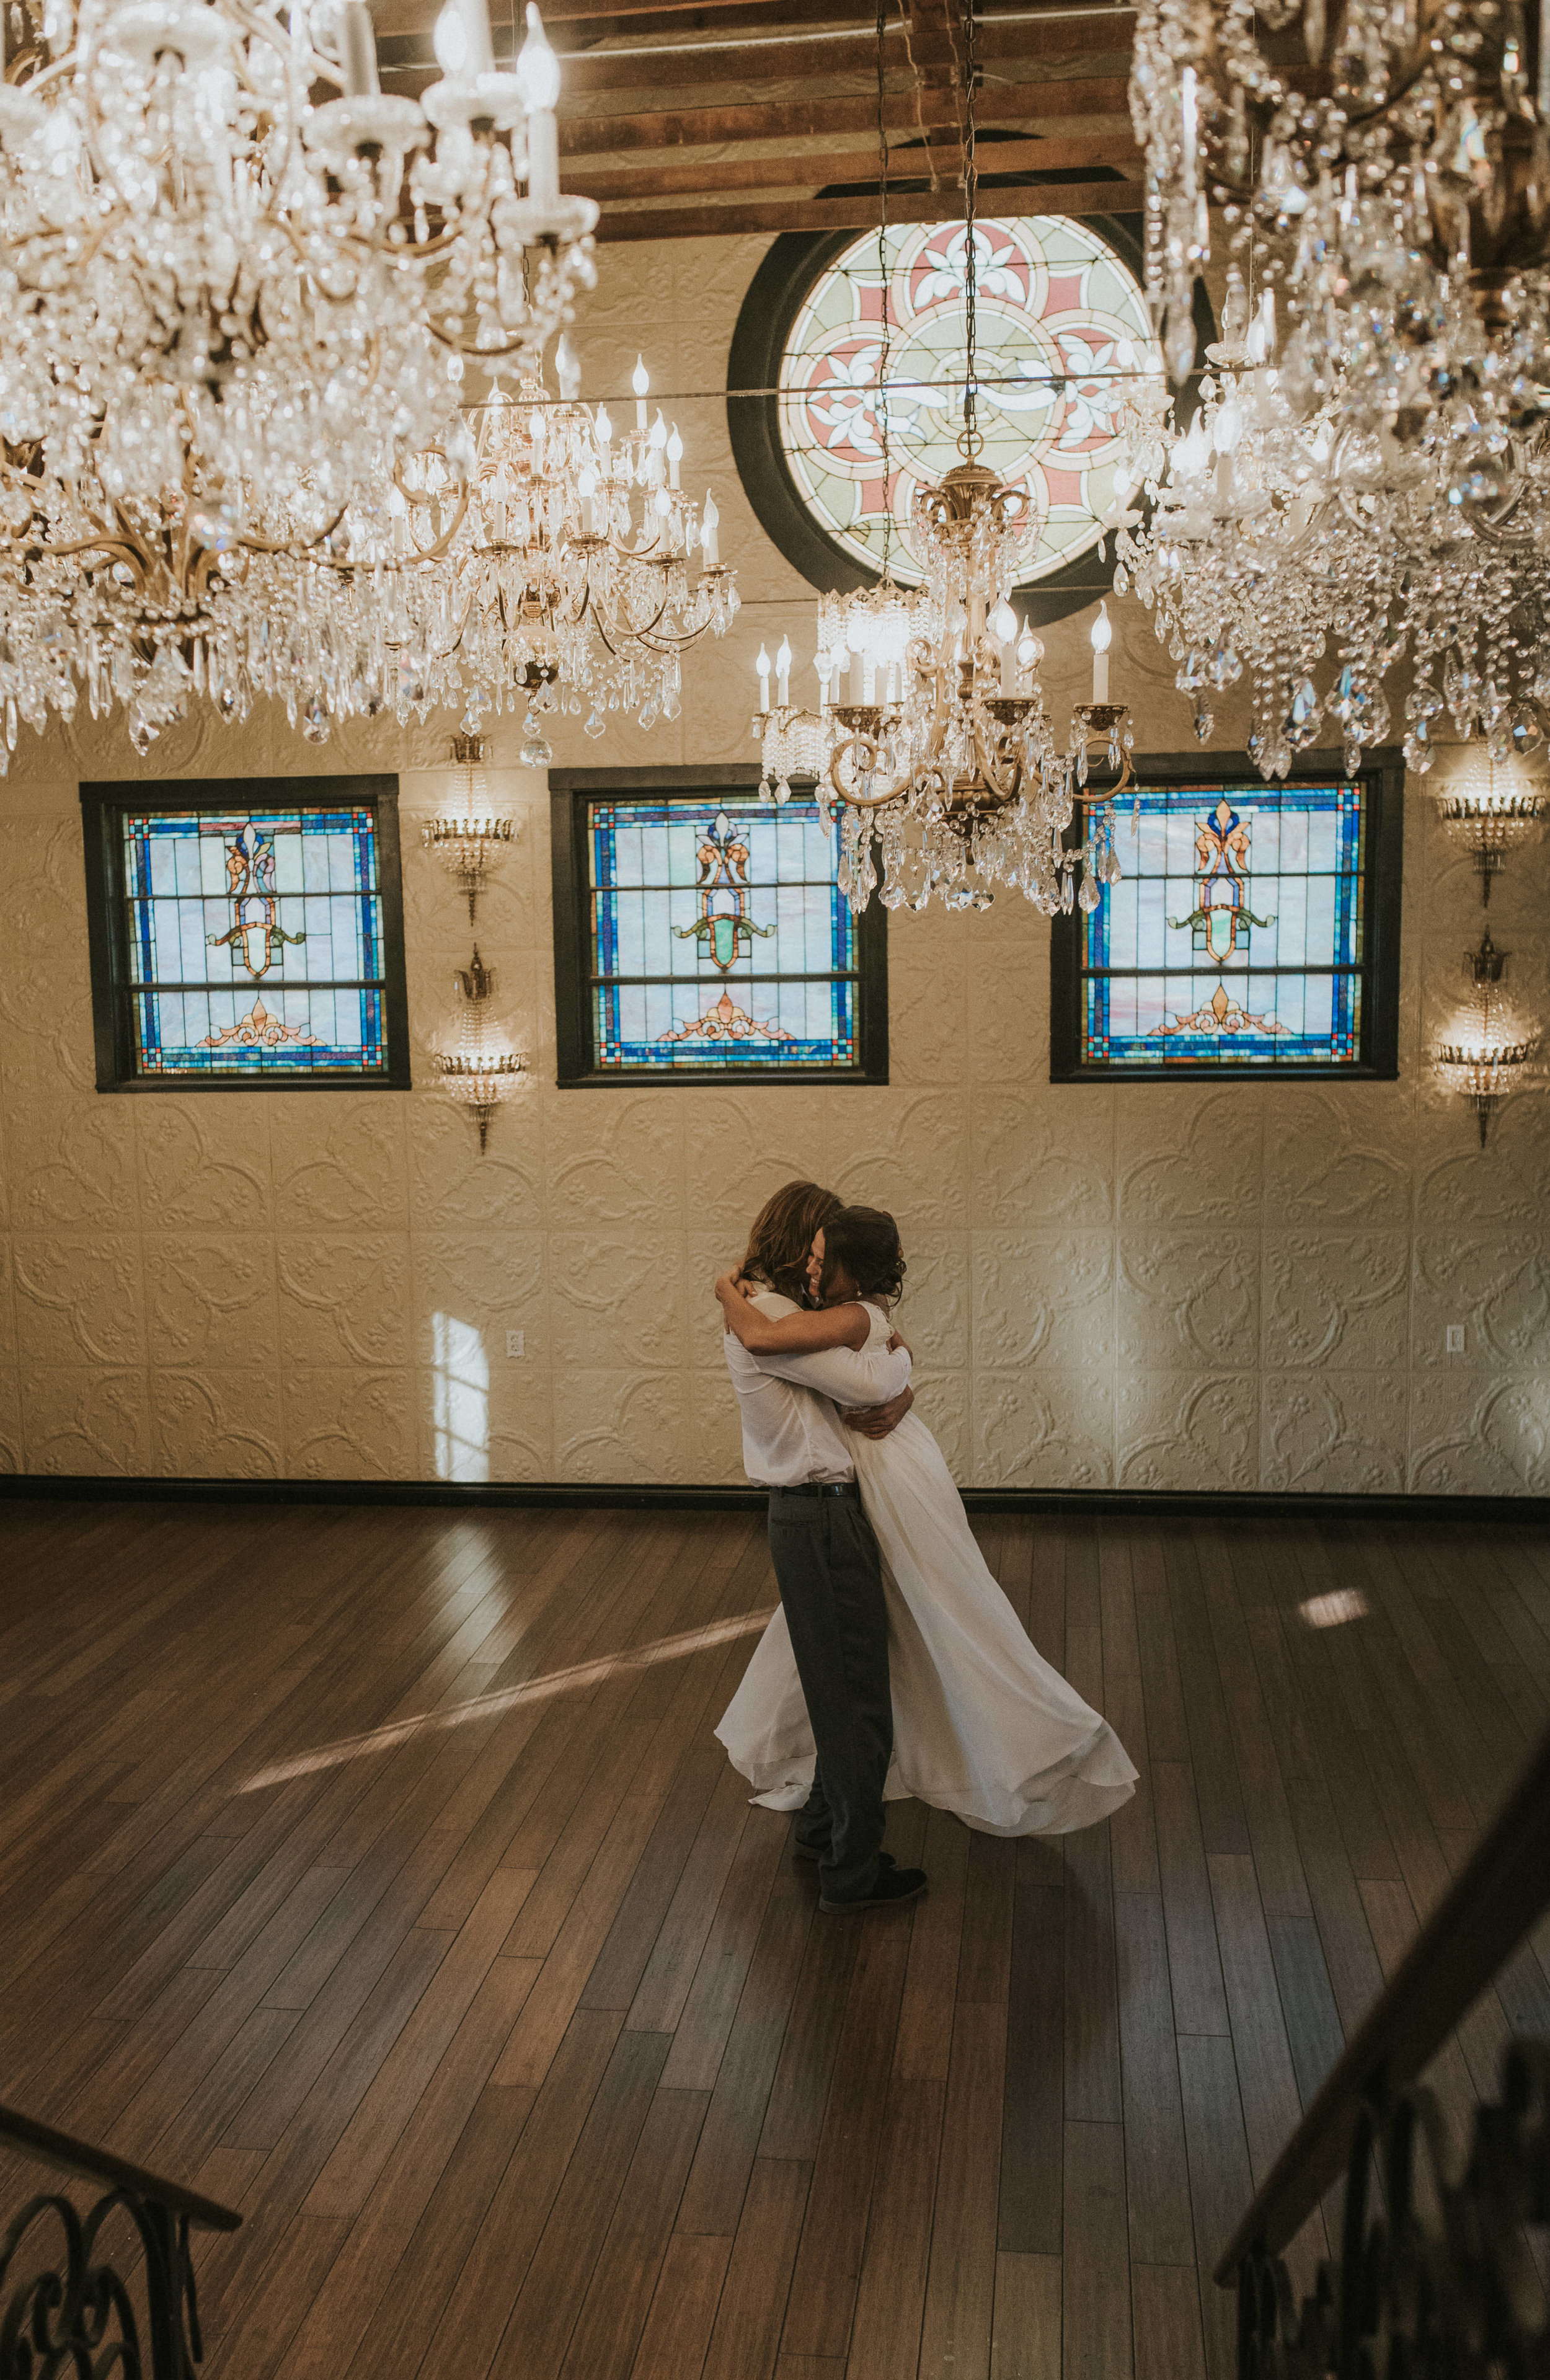 First dance at the Chandelier Barn. Lionsgate Event Center wedding ceremony.